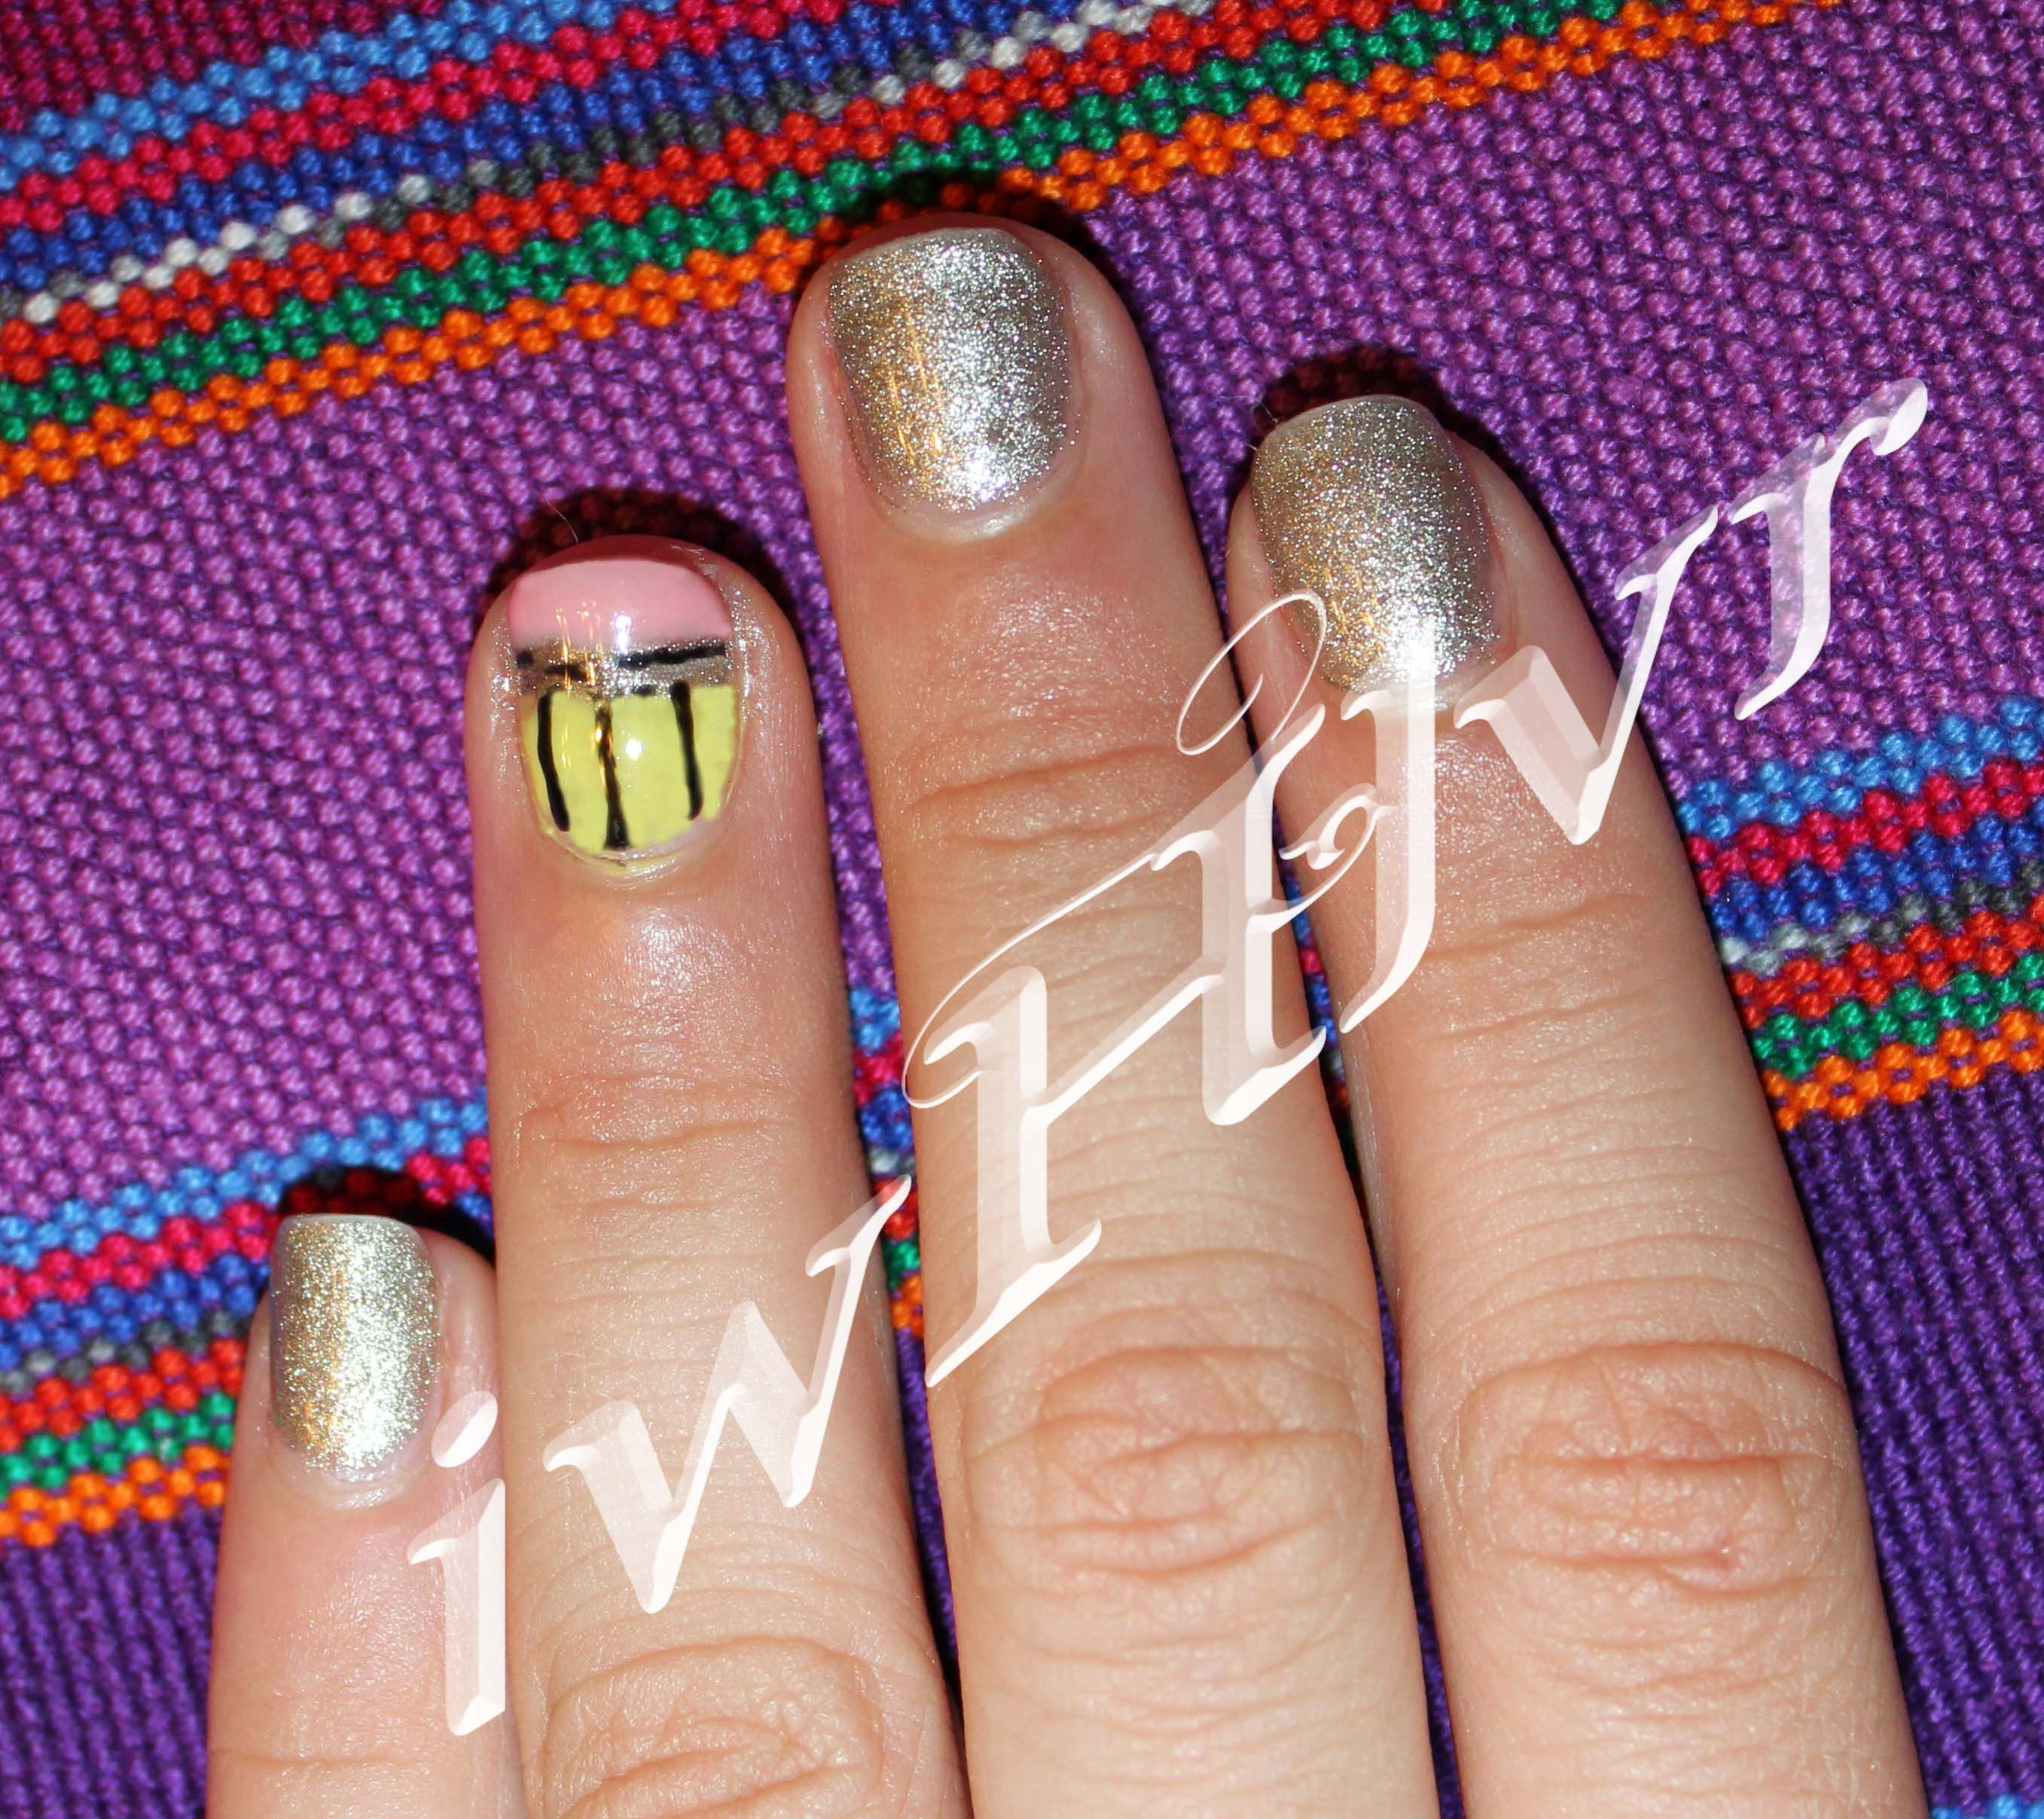 IWHLVR nail art back to school pencil accent nail on short nails ...